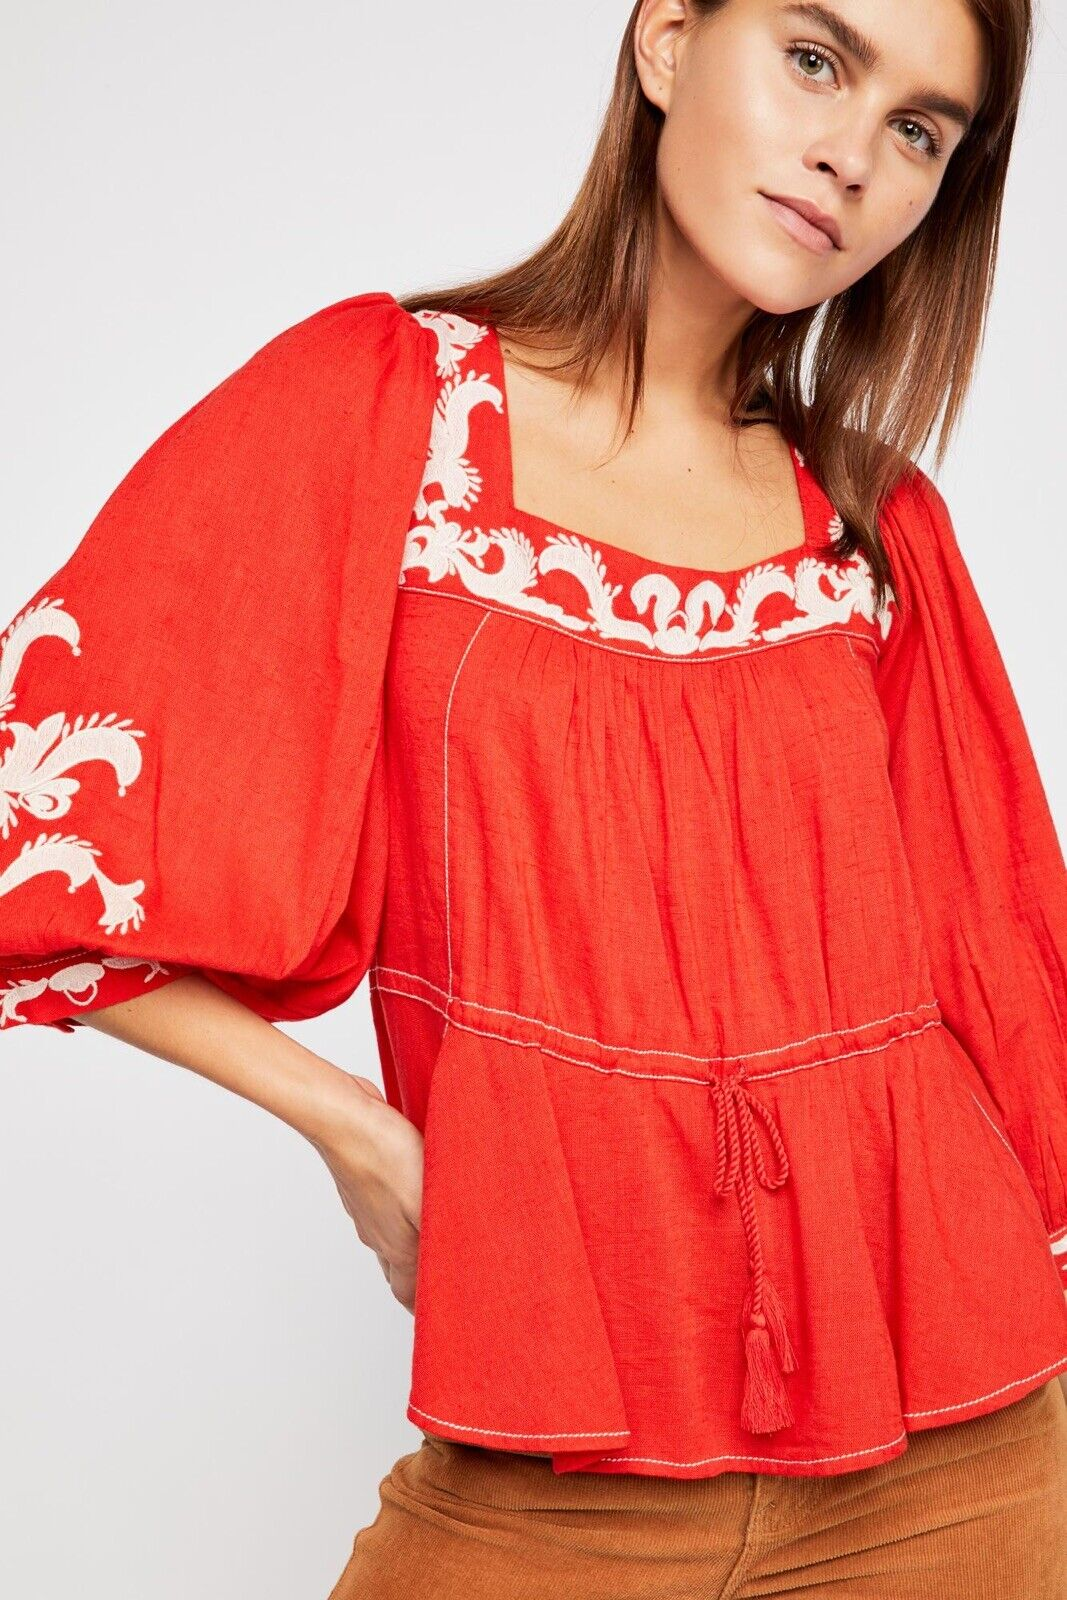 Free People Serenade Embroided Blouse Größe Small